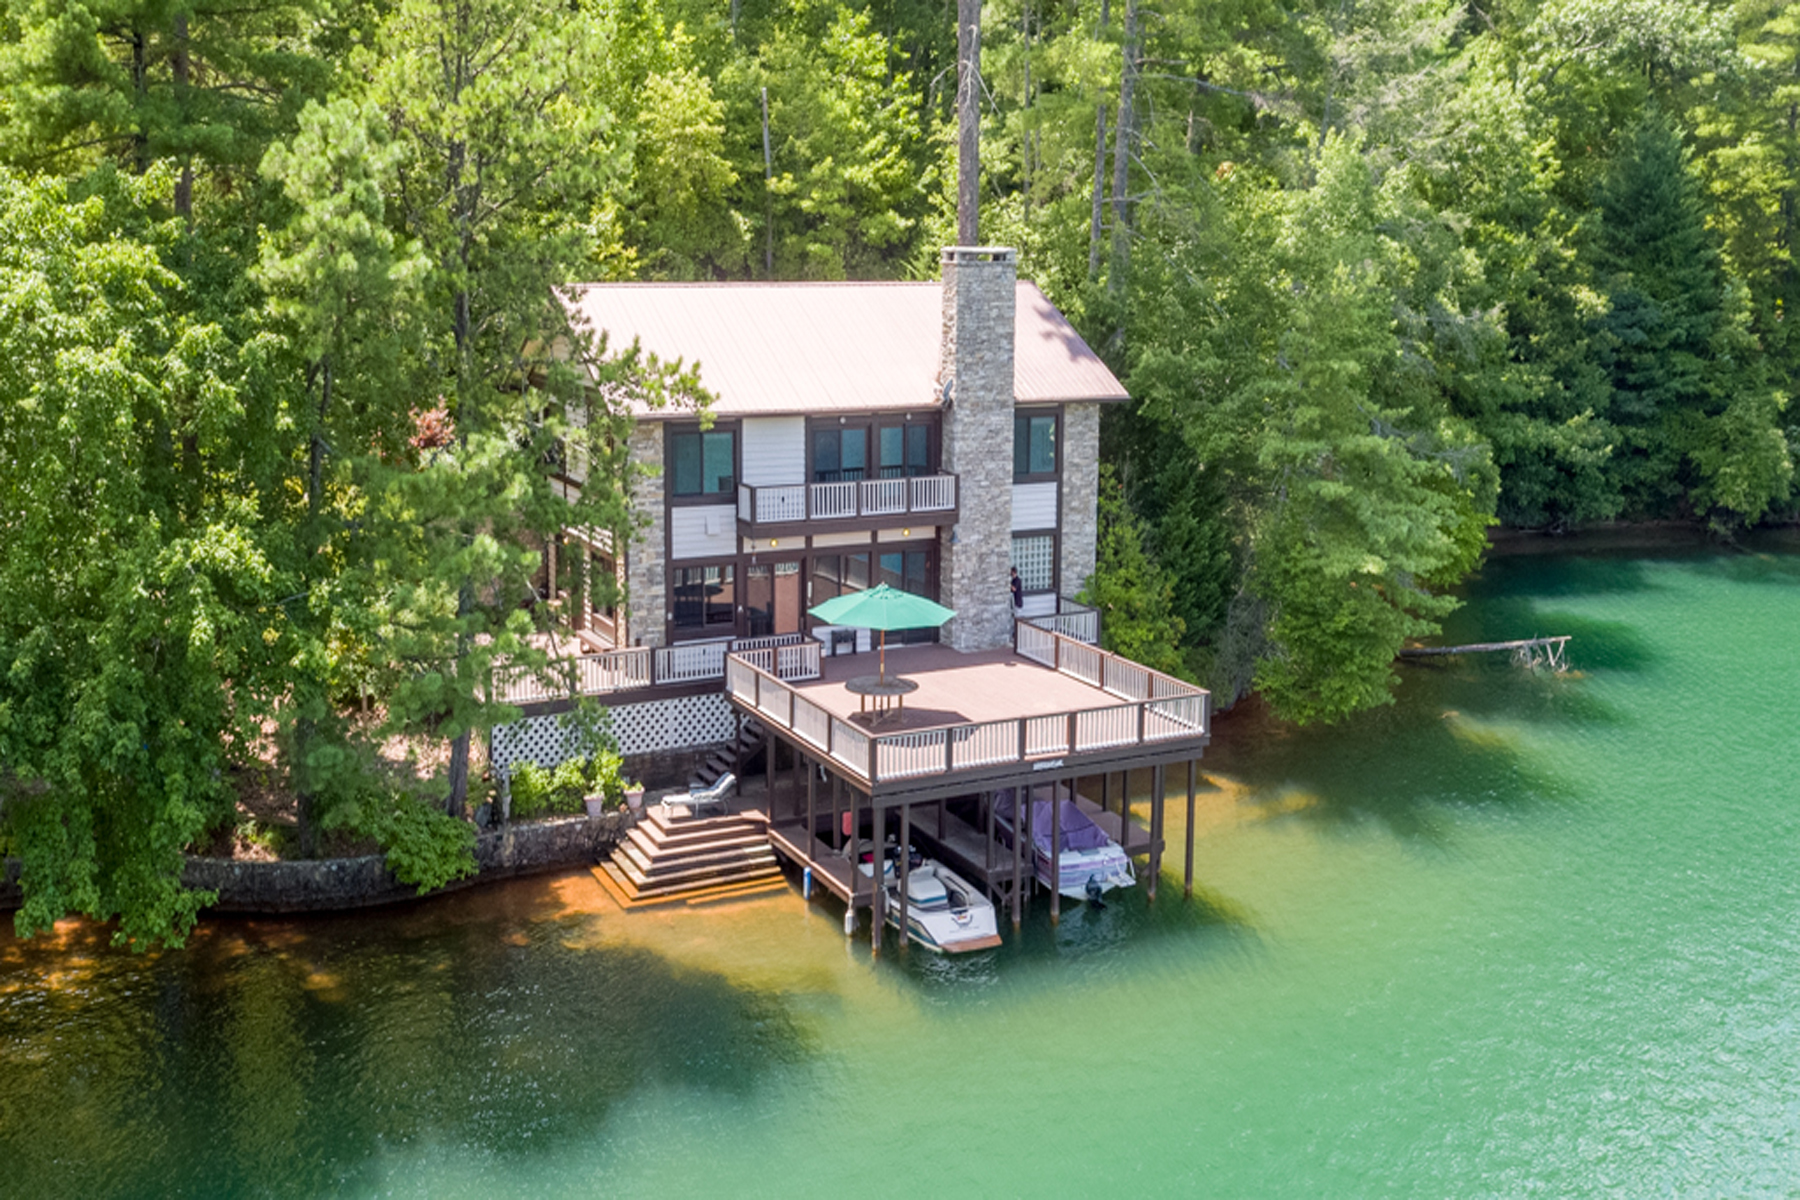 Maison unifamiliale pour l Vente à Lakefront On Lake Rabun! What More Could You Want!! 523 Levi Lane Lakemont, Georgia 30552 États-Unis